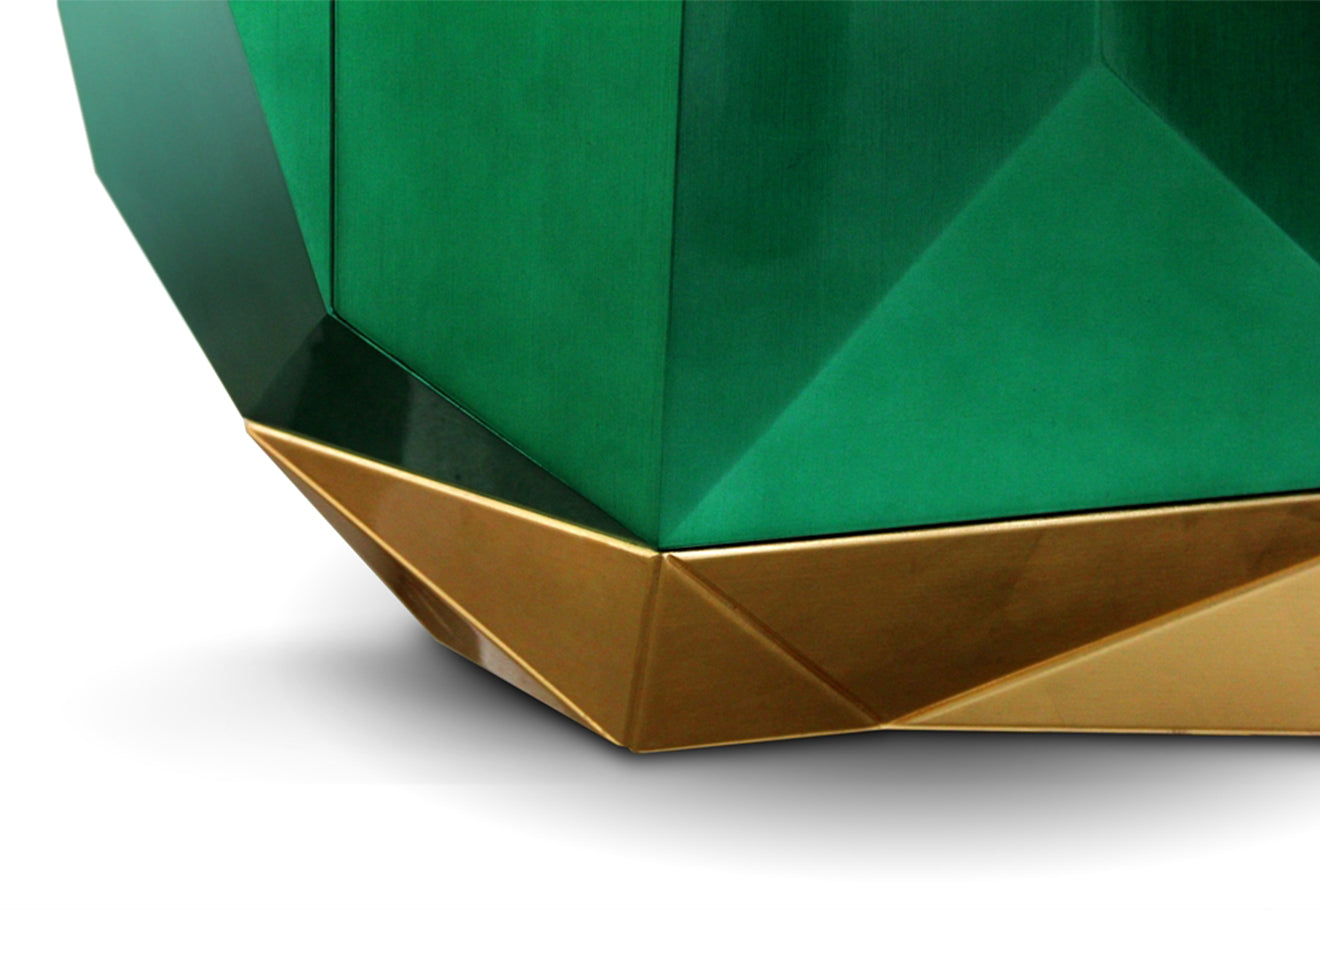 Emerald furniture design boca do lobo